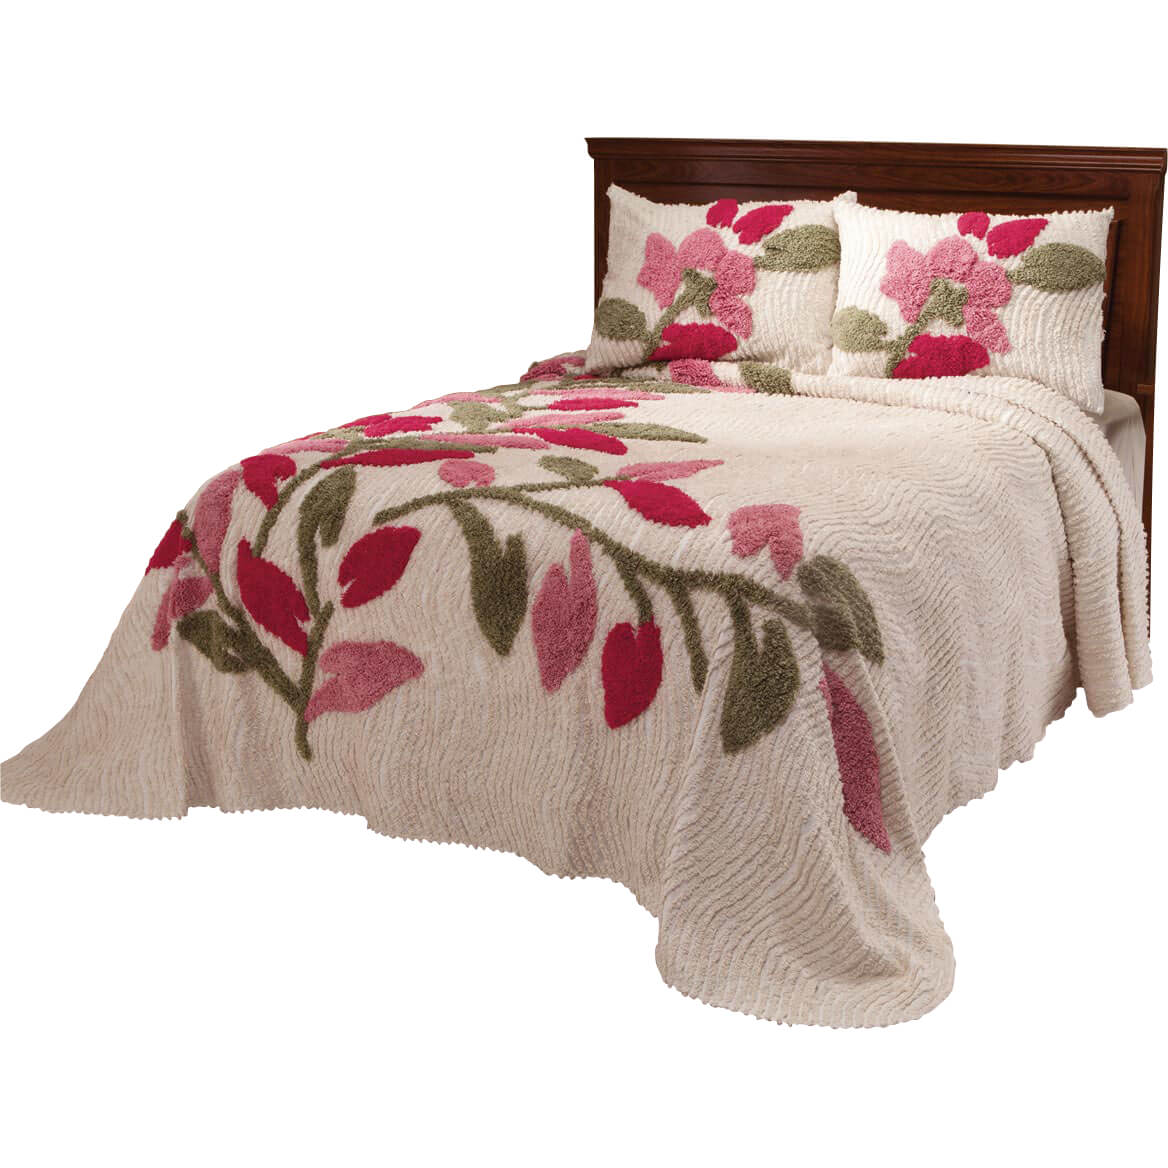 The Marilyn Chenille Bedspread by OakRidge™